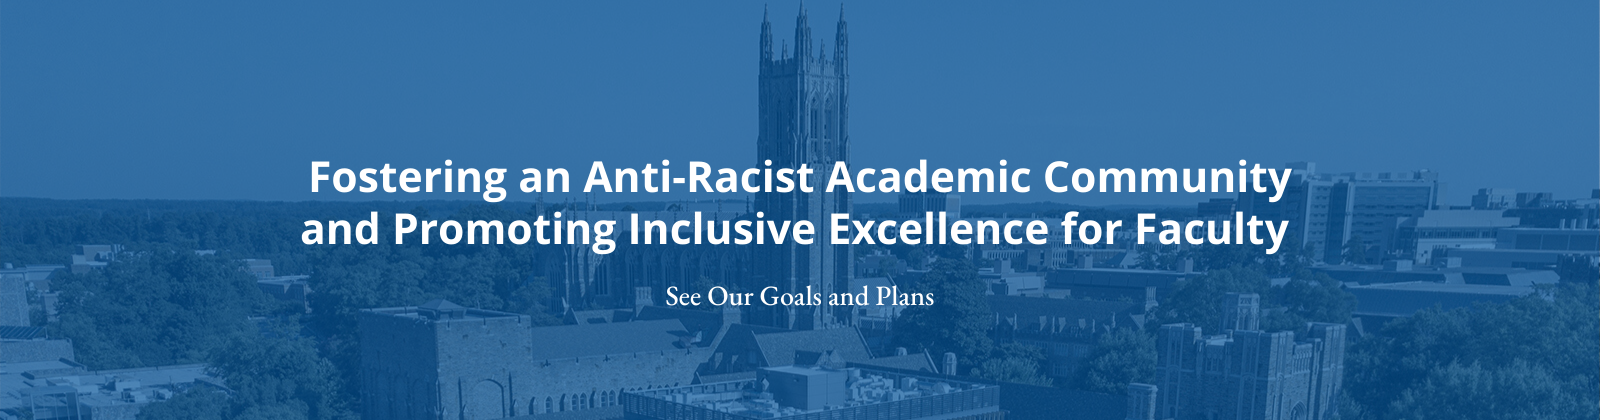 Fostering an Anti-Racist Academic Community and Promoting Inclusive Excellence for Faculty; see our plan